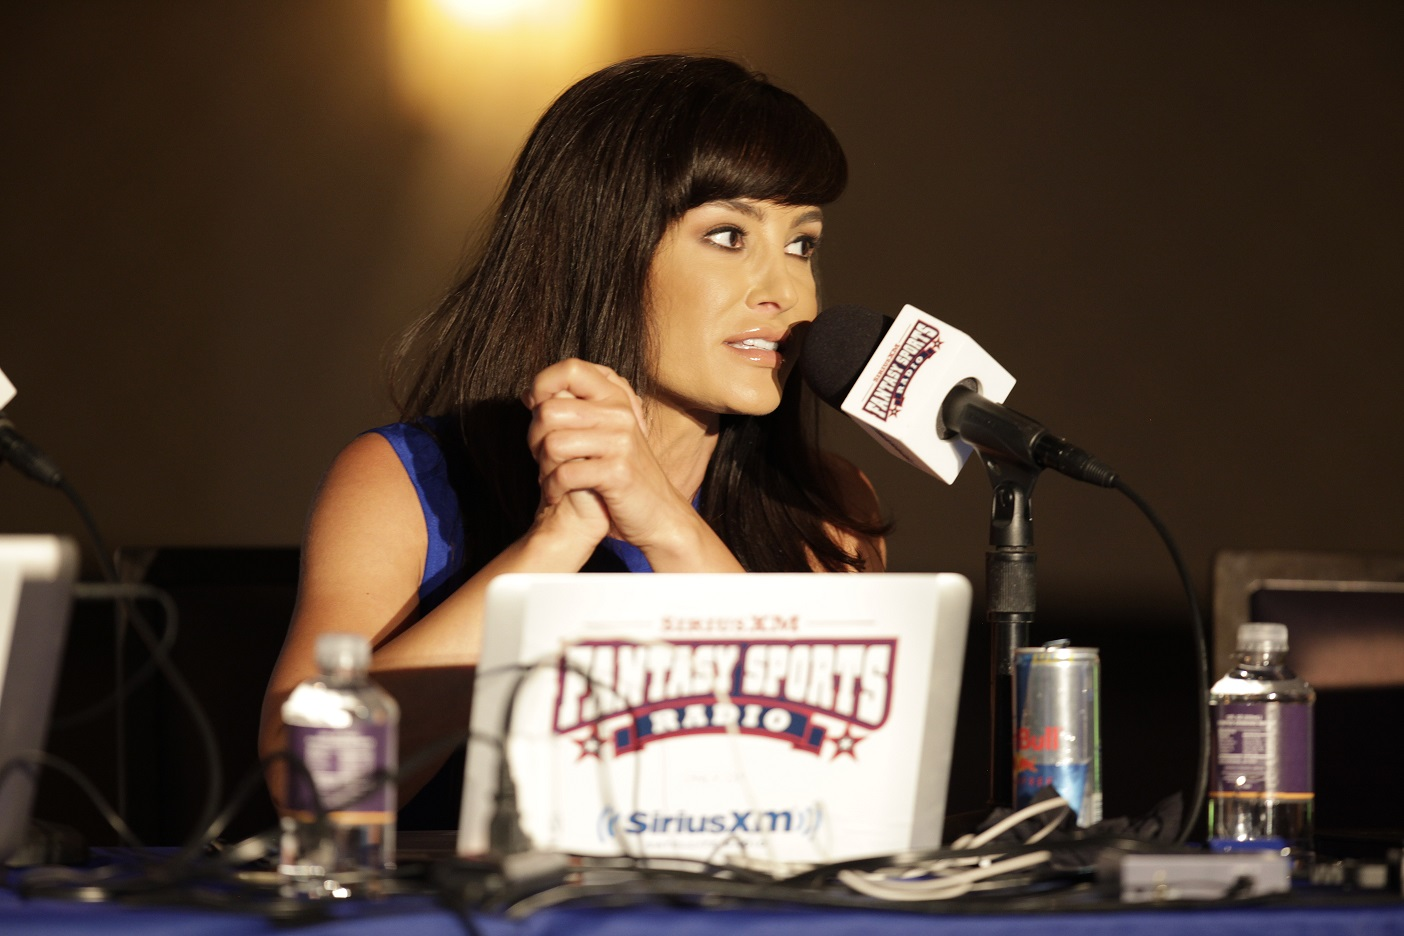 Lisa Ann at the Sirius celebrity fantasy football draft – Loaded